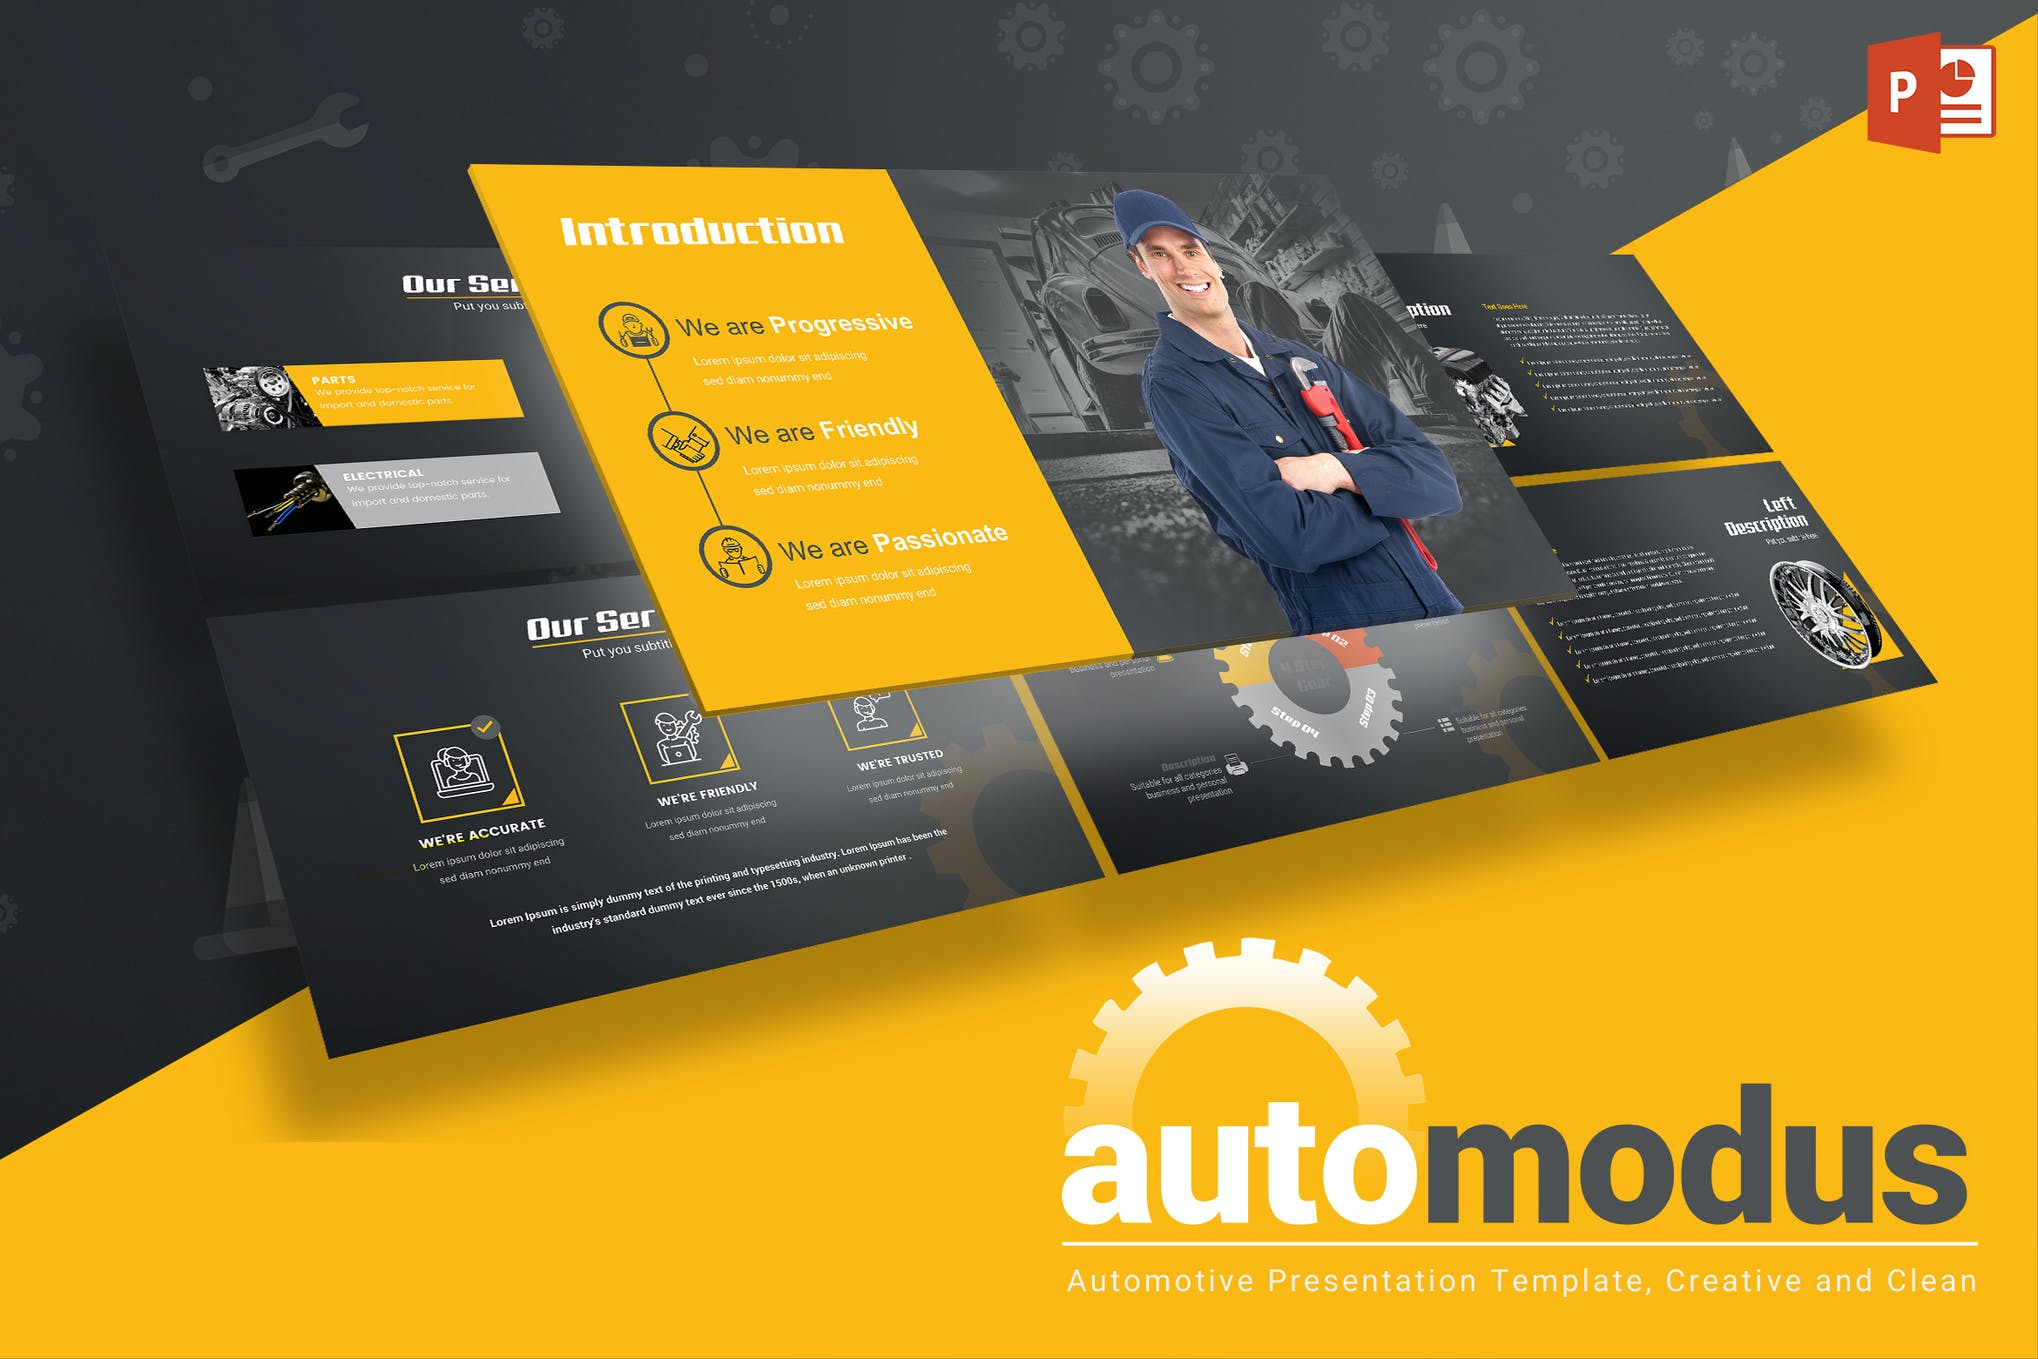 Automodus Automotive Powerpoint Template By Inspirasign On Envato